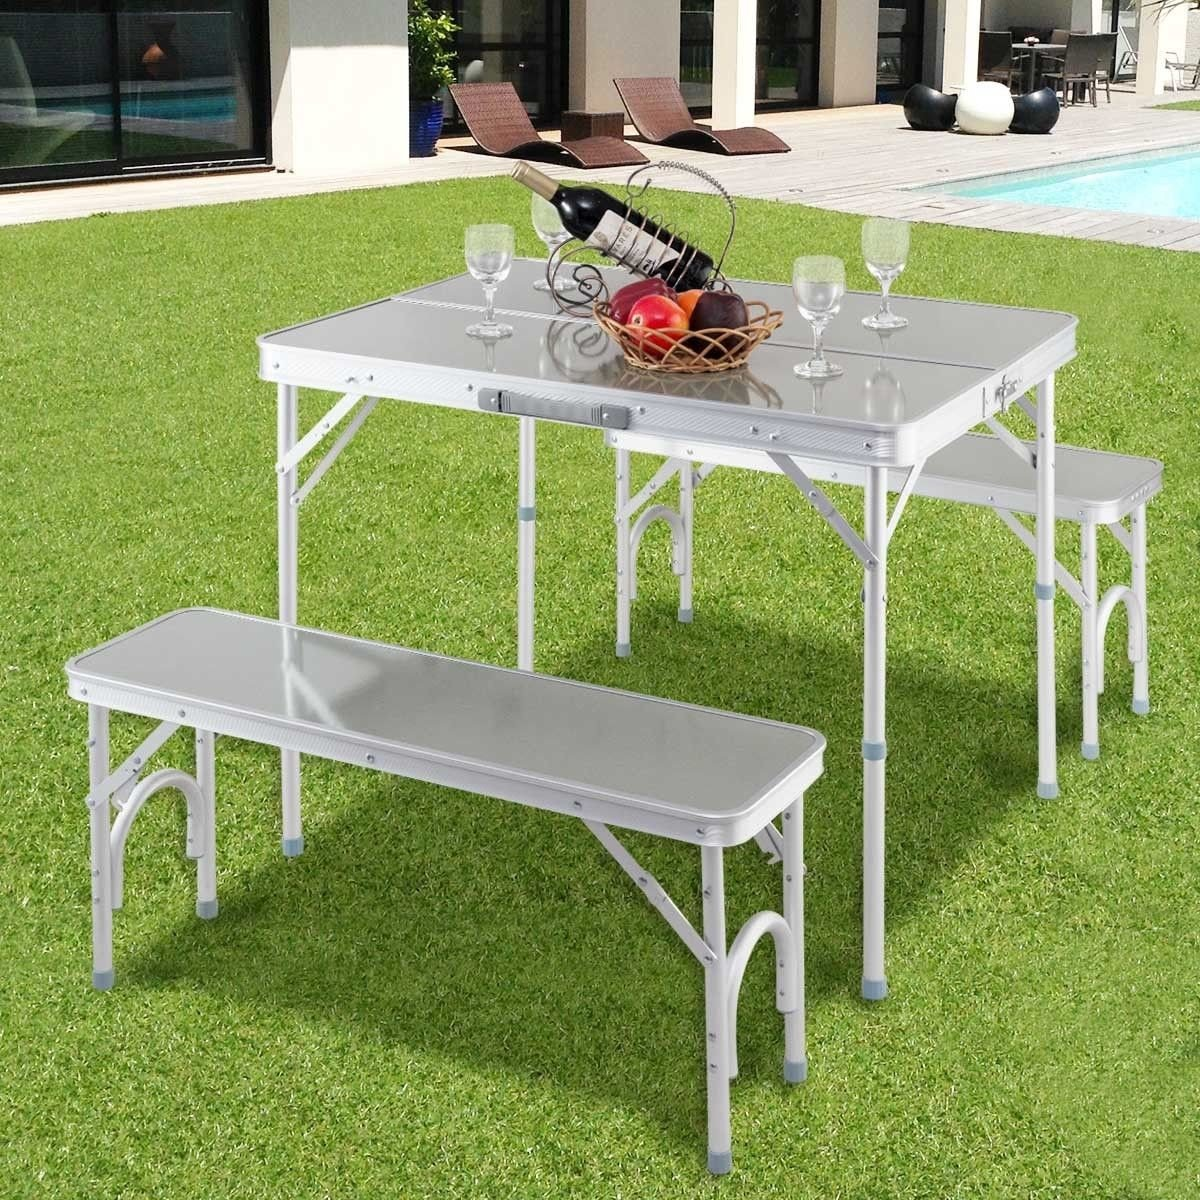 Aluminum Portable Folding Picnic Table With 2 Benches By